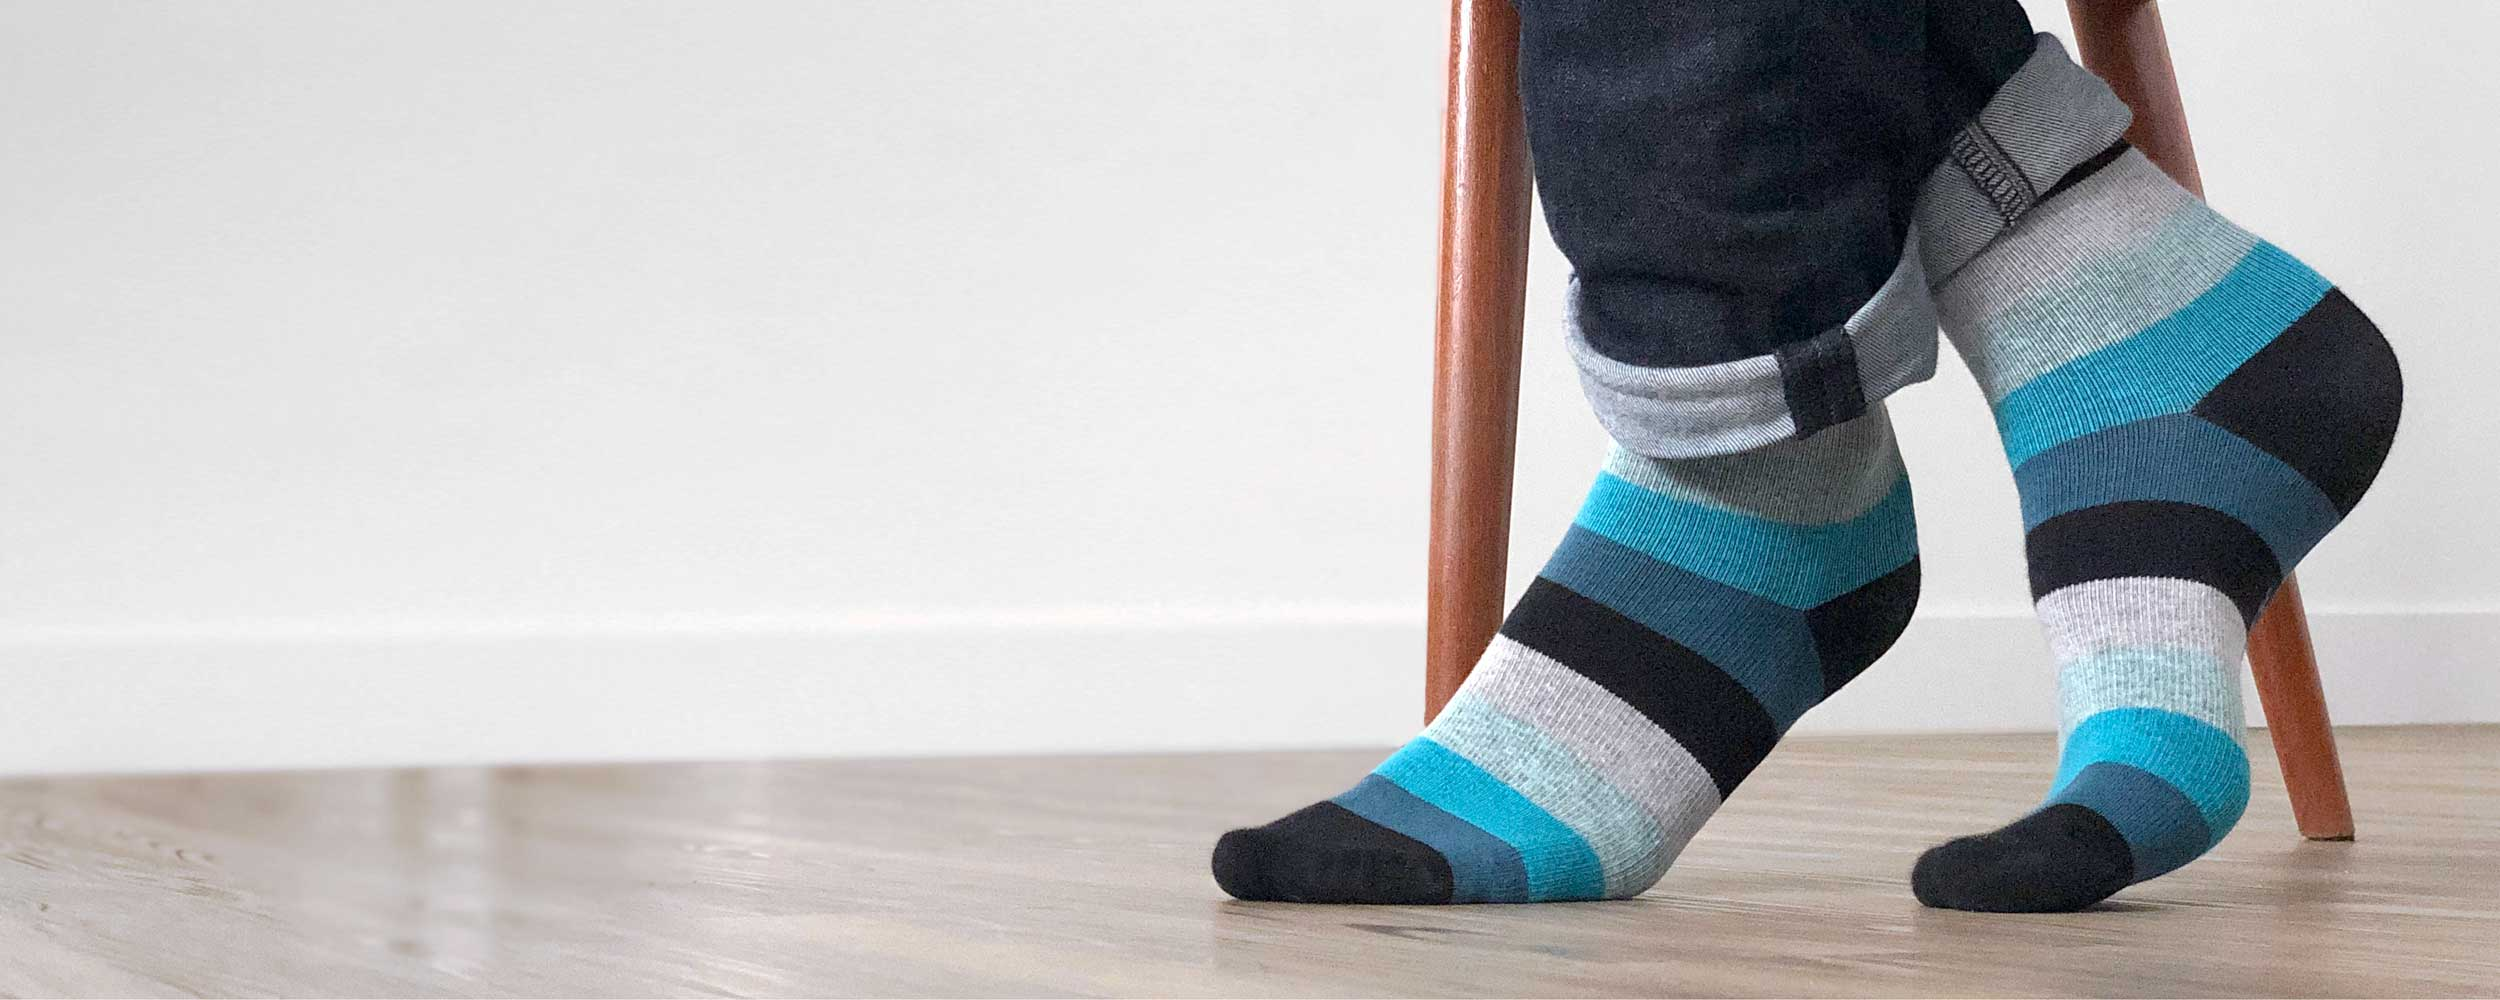 Man's feet with blue and black striped compression stockings